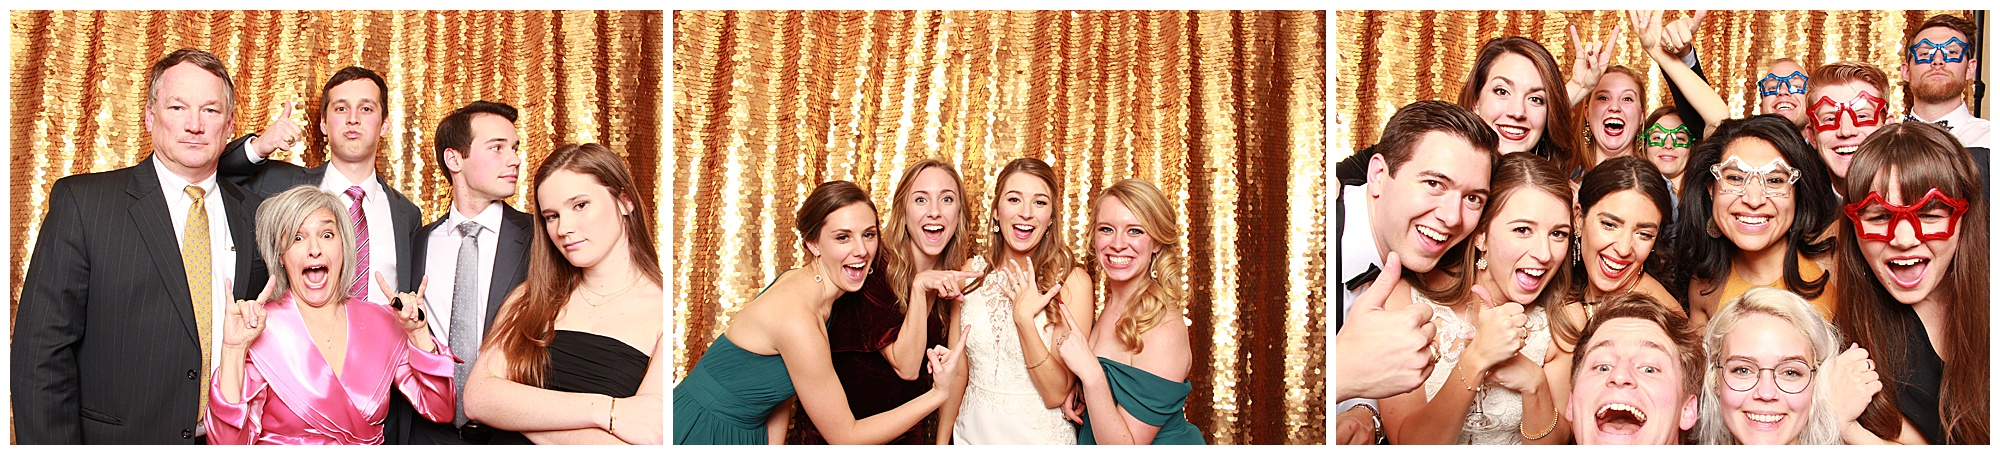 austin wedding photo booth_0068.jpg